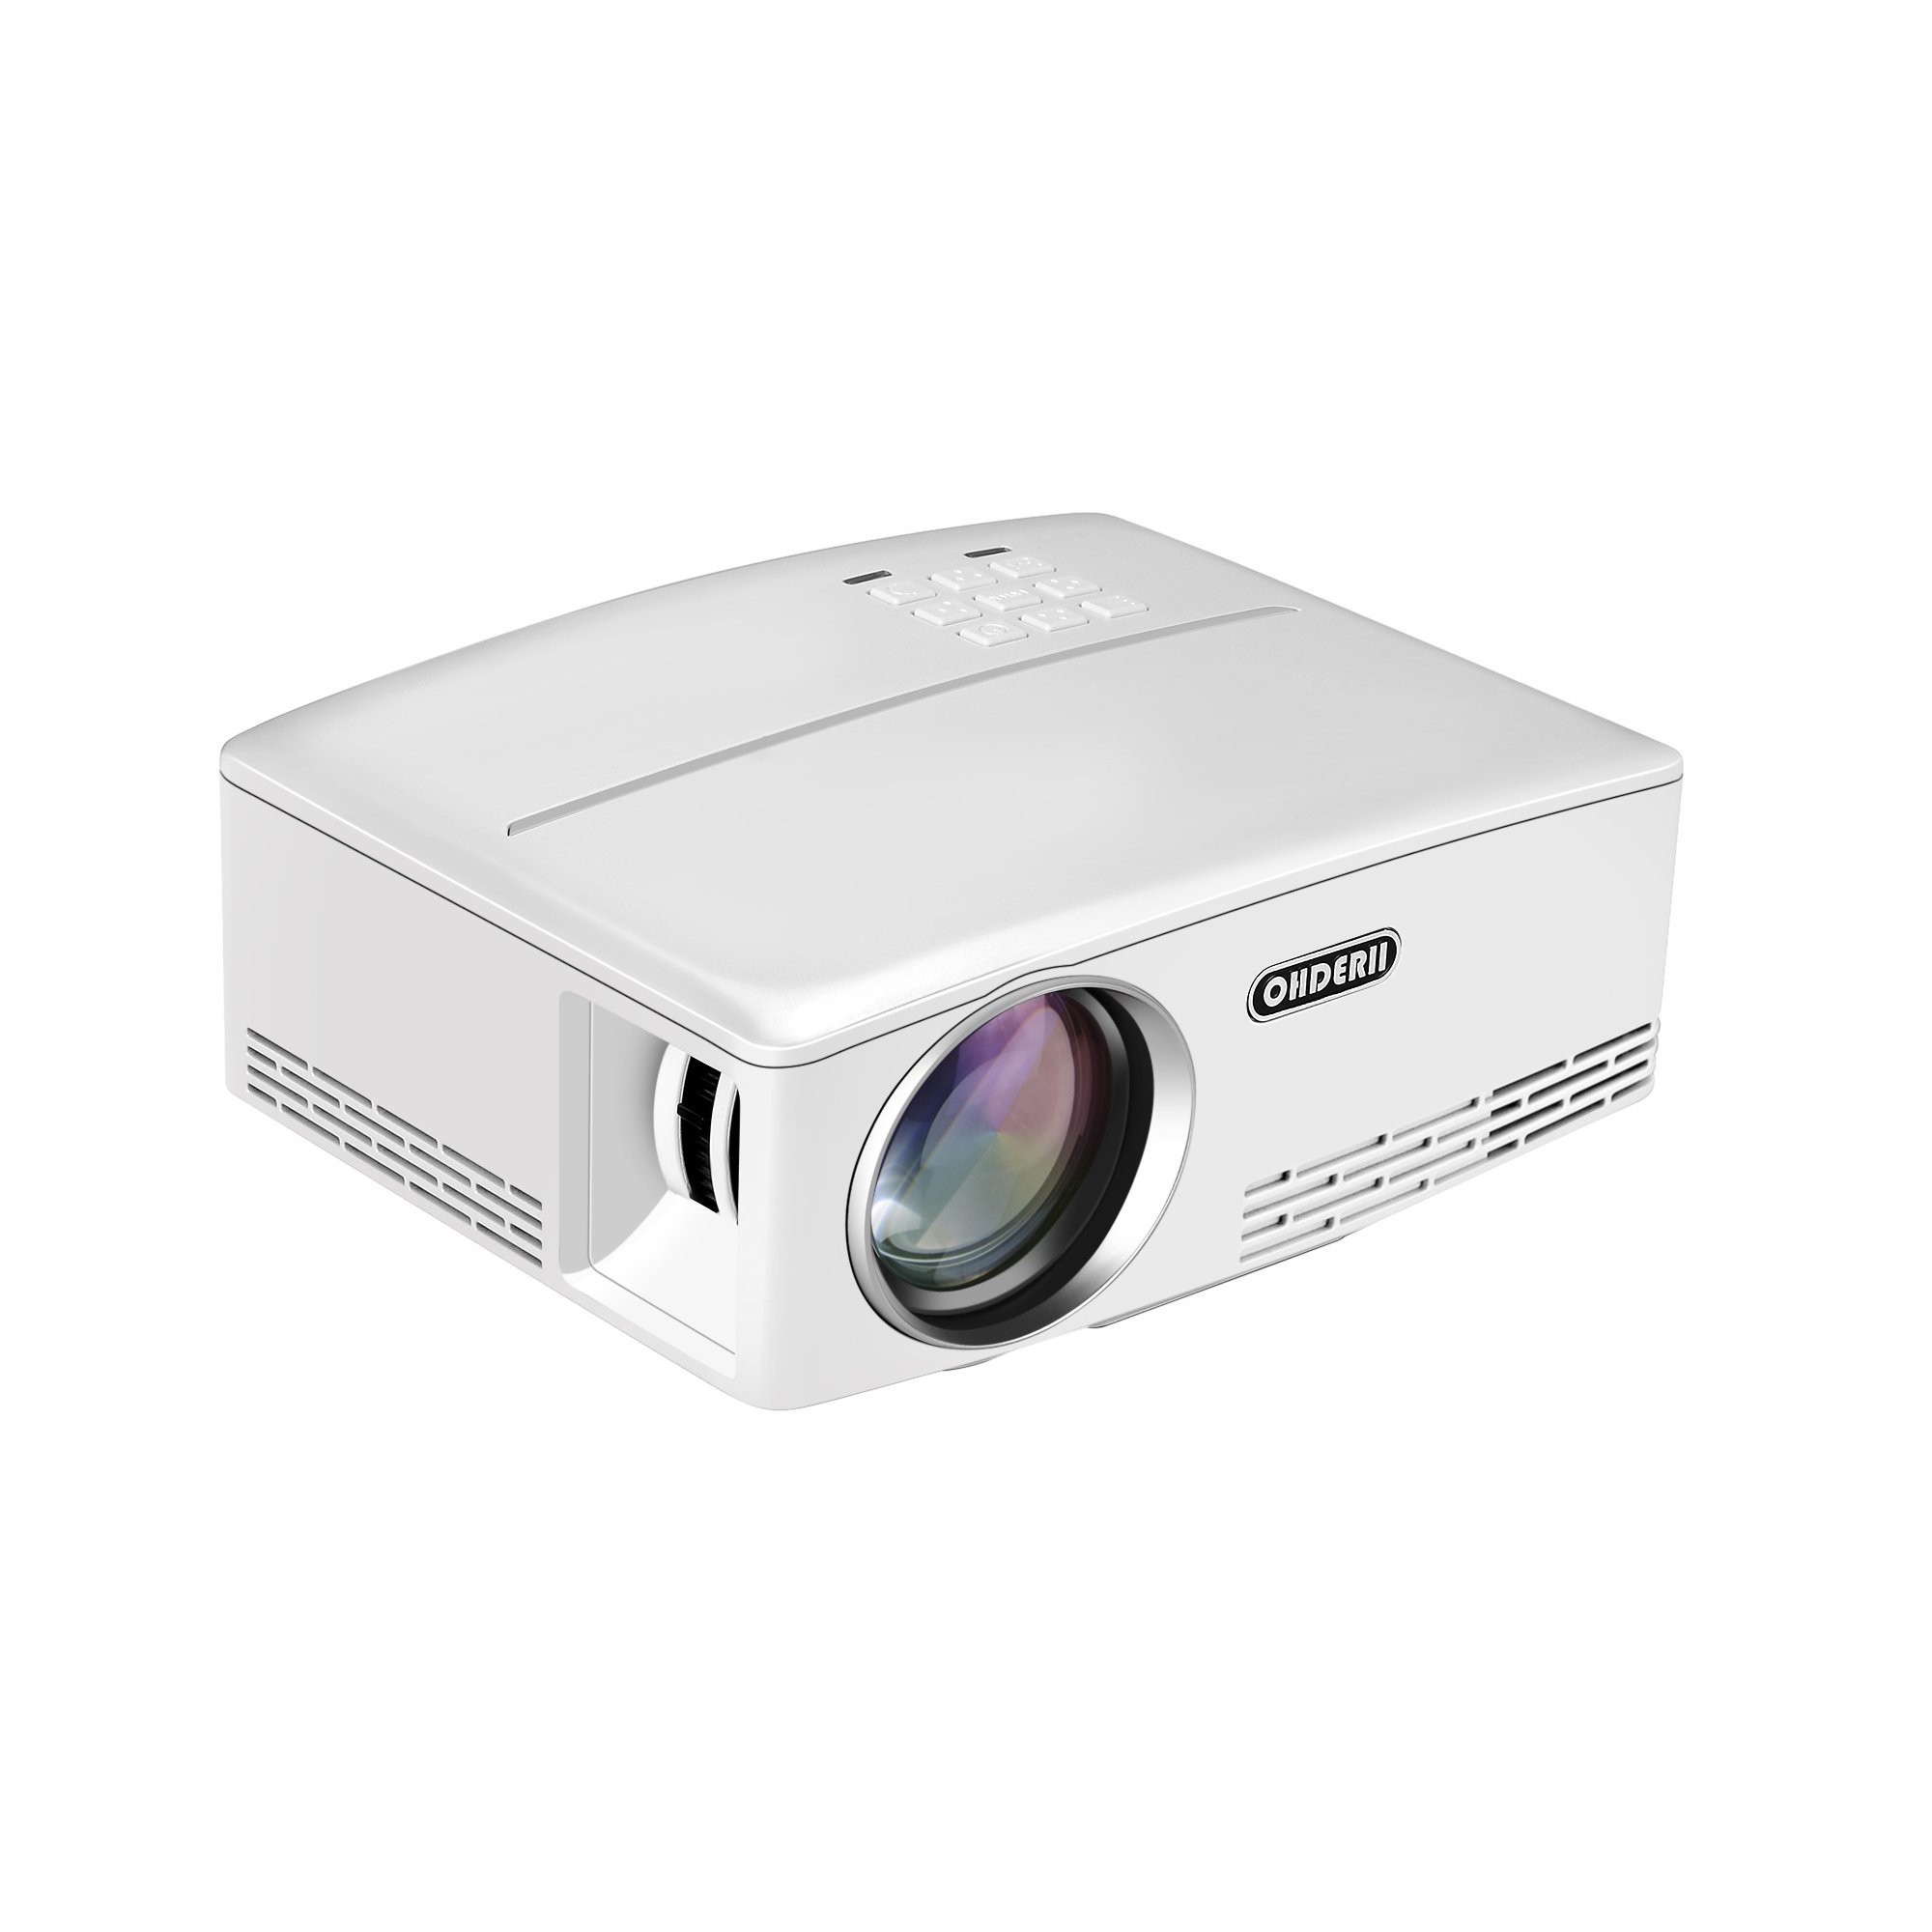 """Projector, ohderii 2018 Newest Upgraded LED Video Projector +30% Lumens for 180"""" Home Theater Support HD 1080P HDMI VGA AV USB for Laptop iPhone/iPad Sma For Watching (White)"""